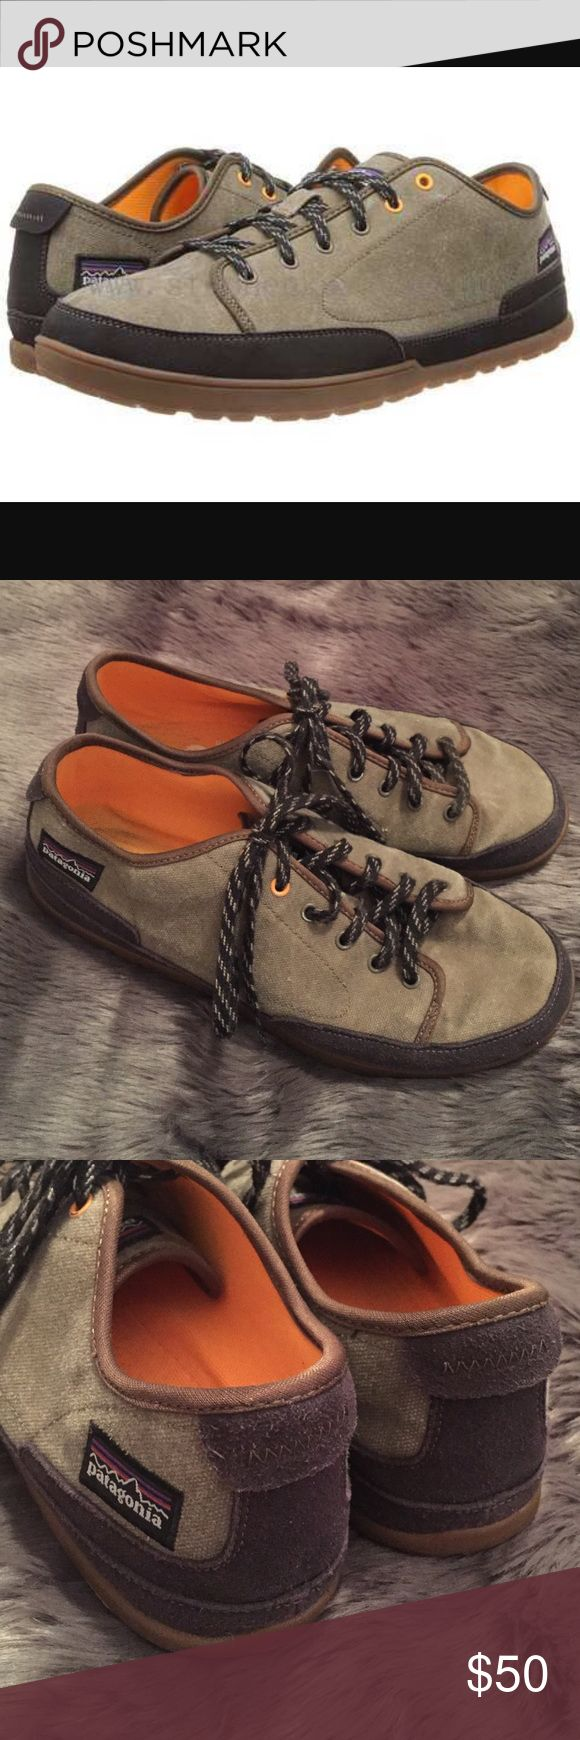 Patagonia Hickory Activist Sneakers Like new Patagonia Hickory activist canvas sneakers.  The only signs of wear include slight wear on the soles and some slight paint chipping on some of the shoelace eyelets.  Otherwise, the shoes look new. Patagonia Shoes Sneakers